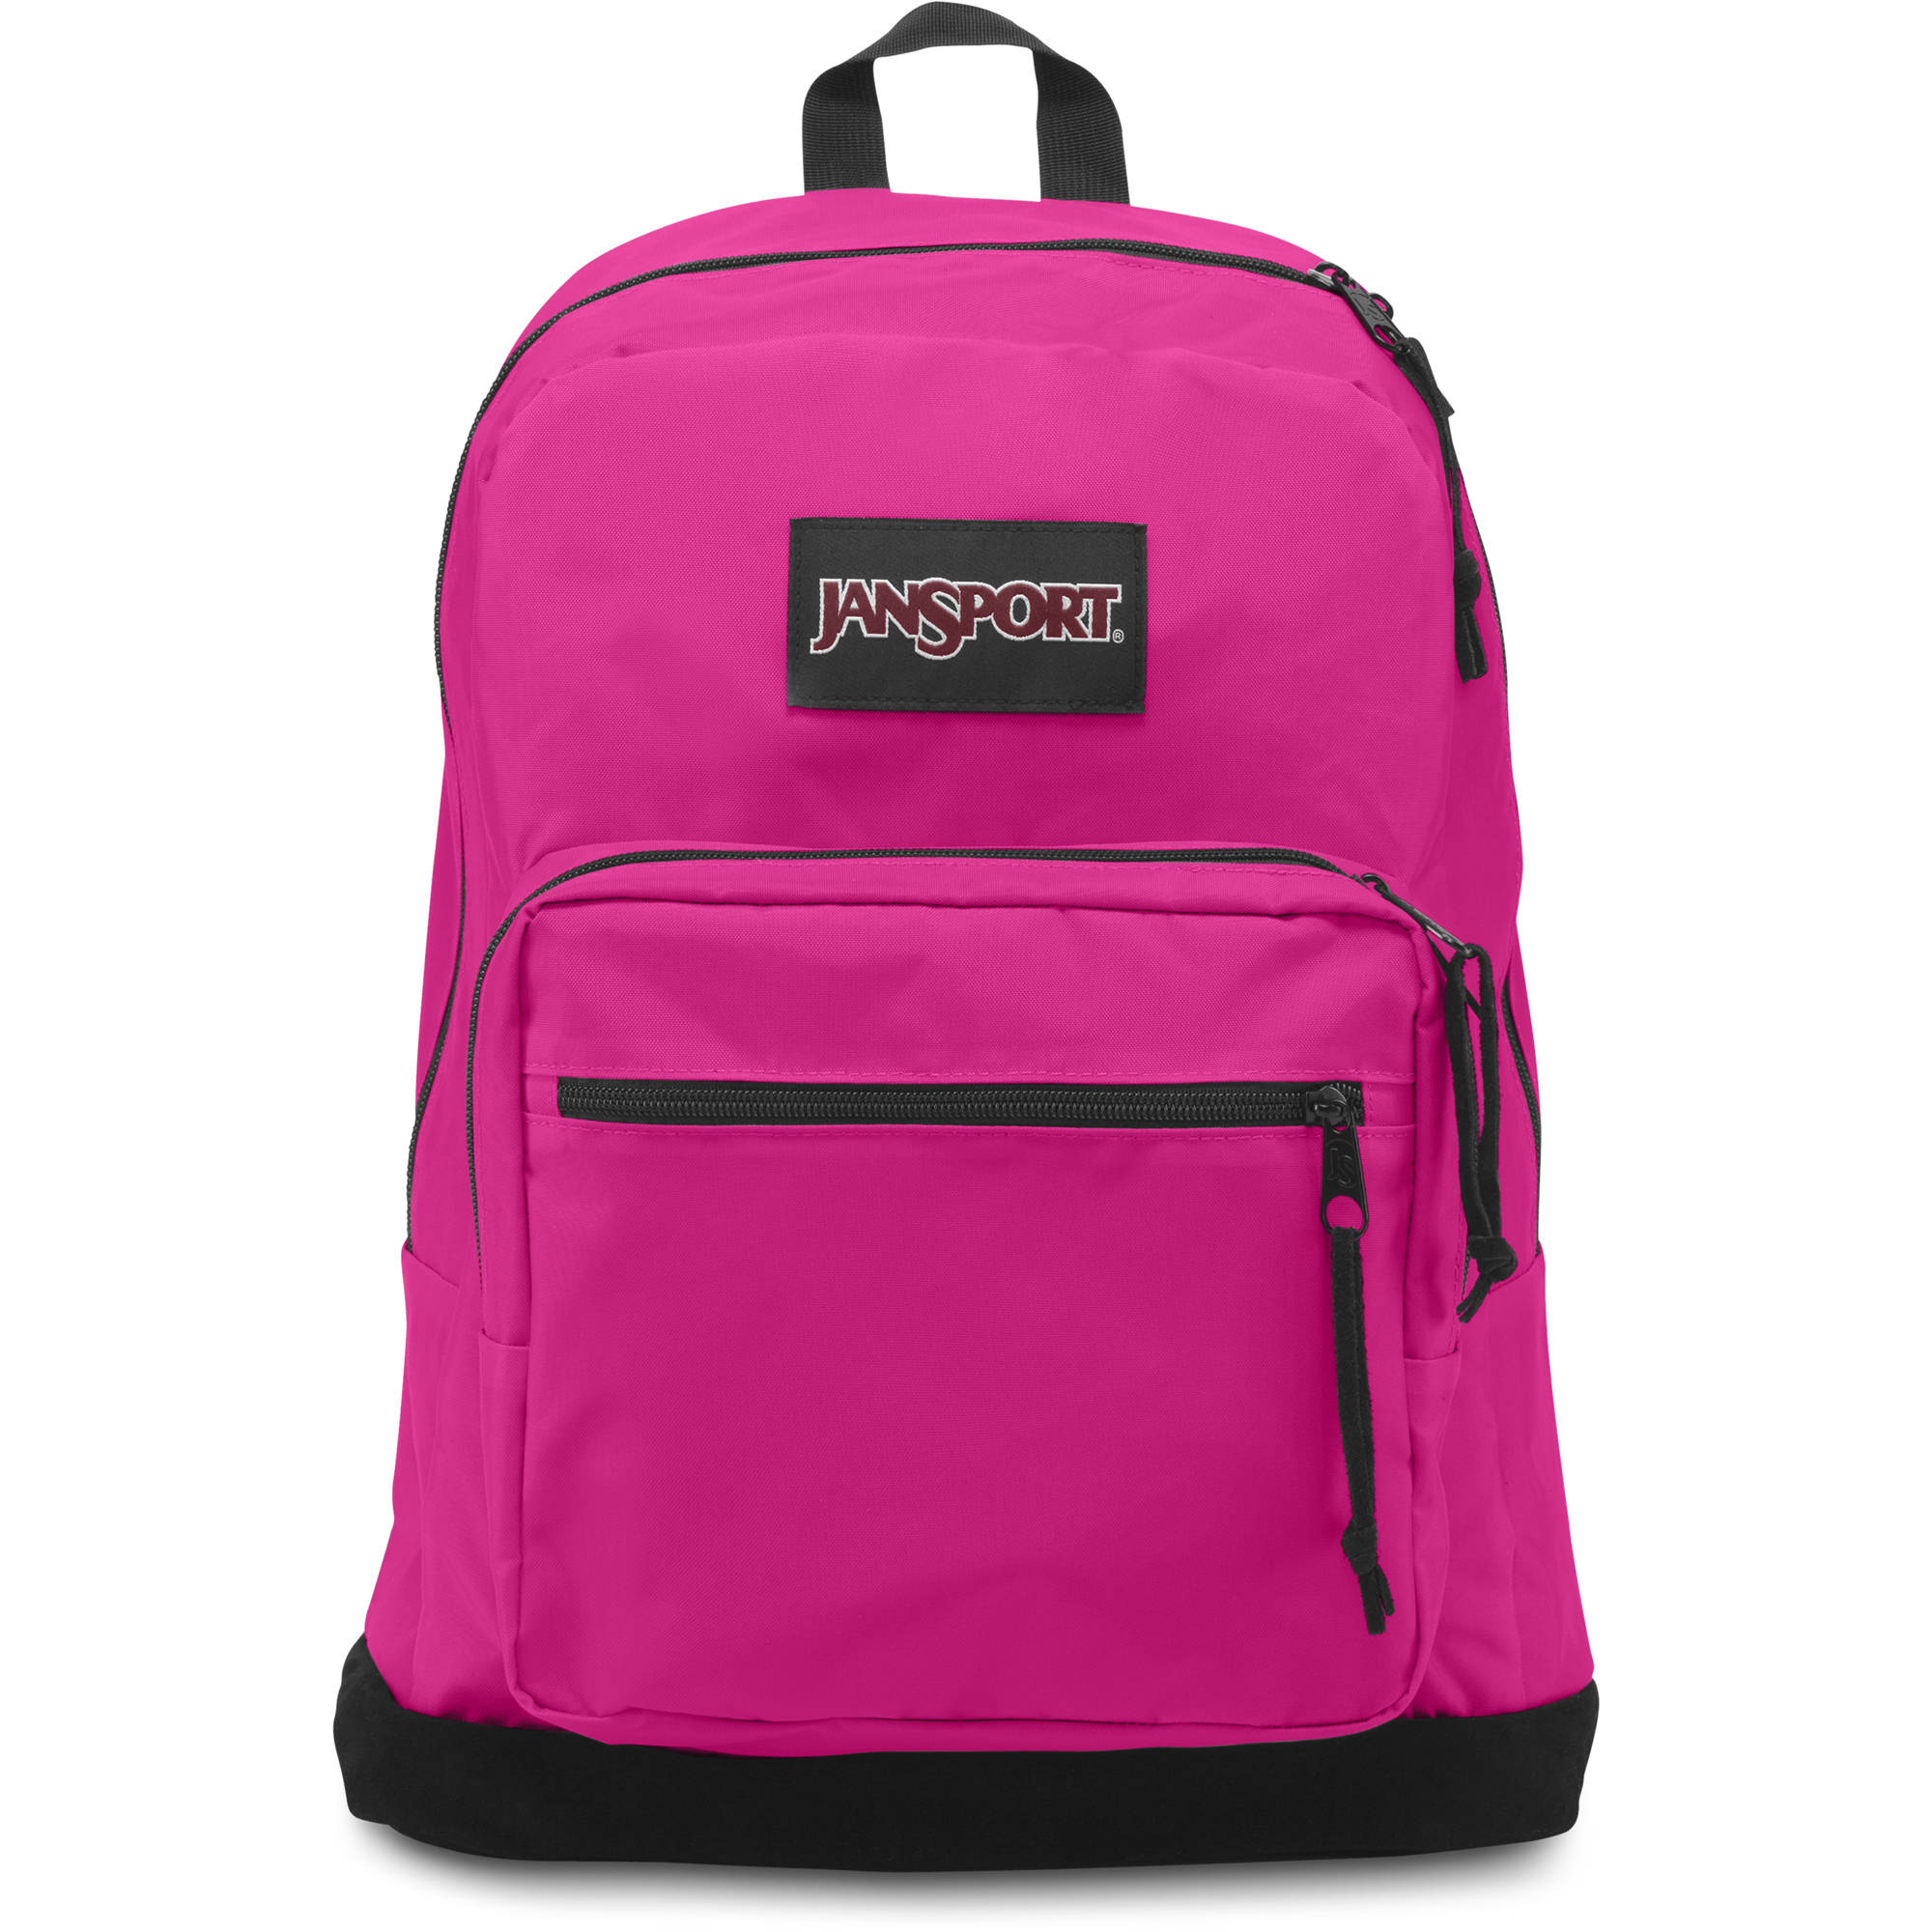 JanSport Right Pack Digital Edition 31L Backpack (Cyber Pink) ae09892751411